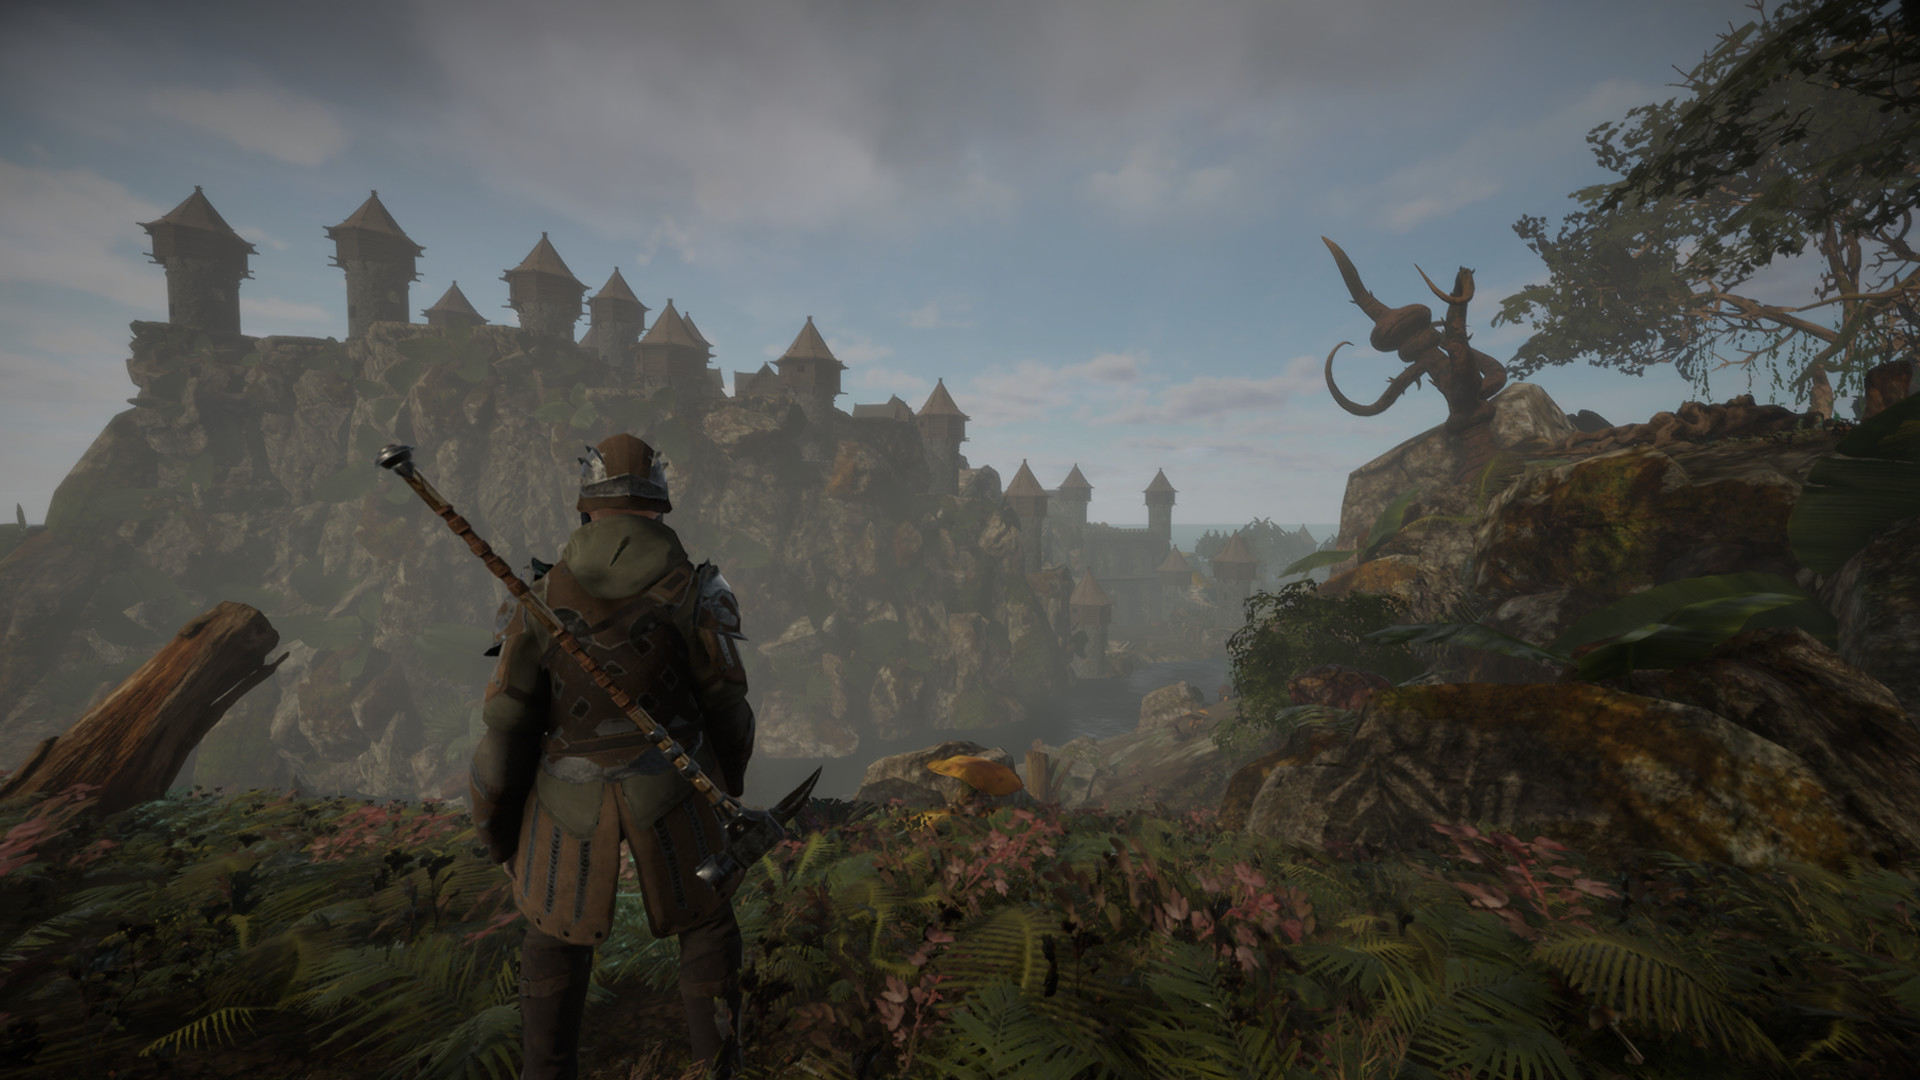 The player character, dressed in armor and wielding a sword, looks out upon the vast landscape in Isles of Adalar.